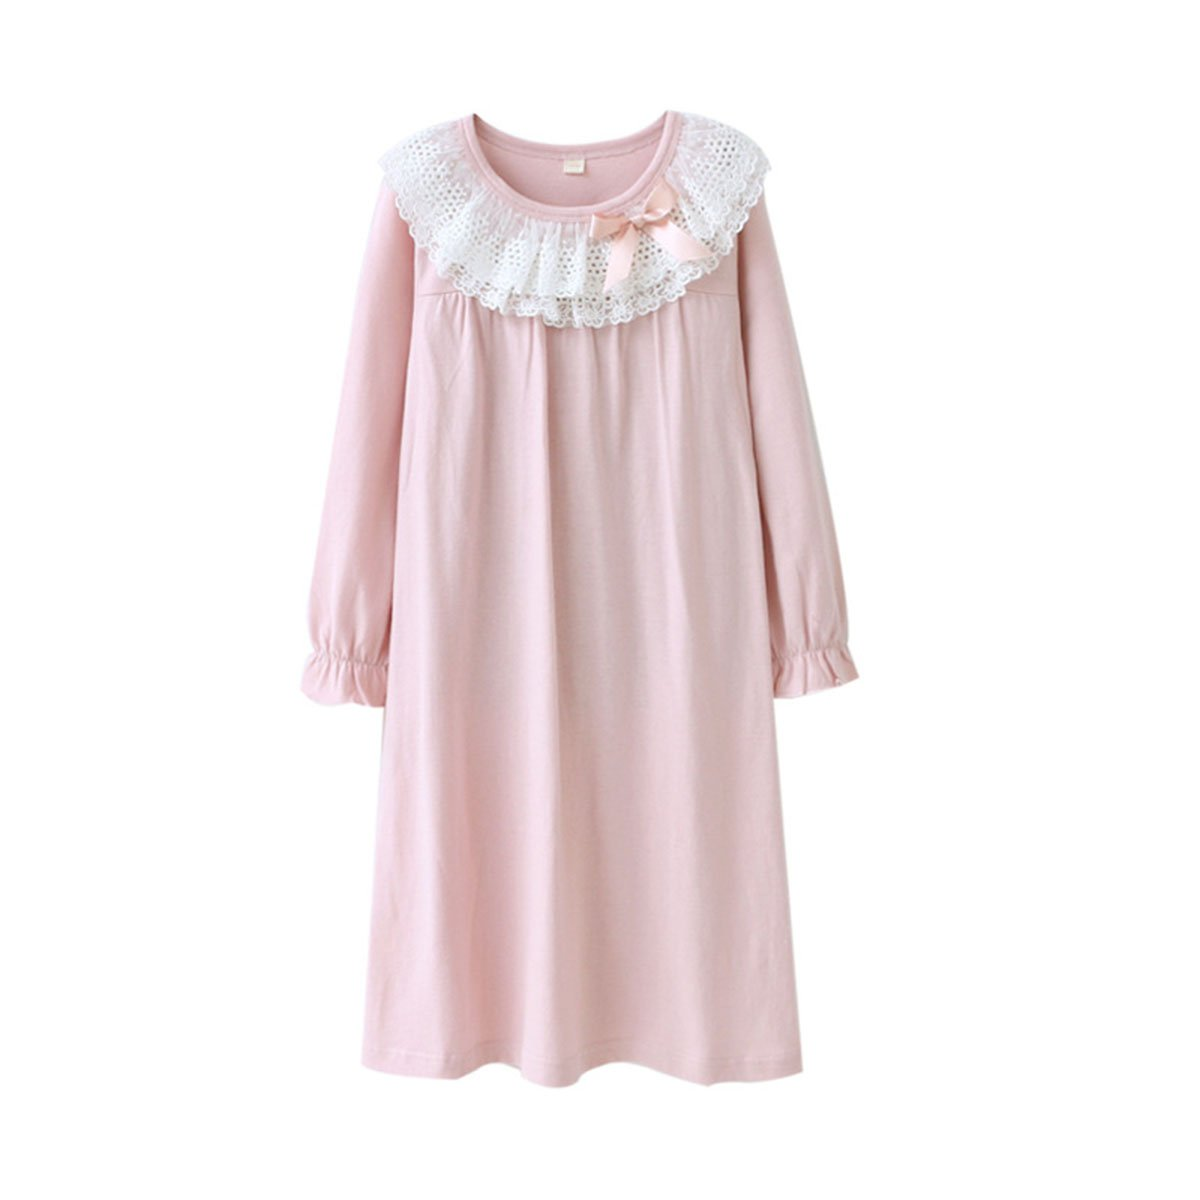 KINYBABY Girls Cotton Nightgown Lace Bowknot Princess Sleepwear Nightwear Dress